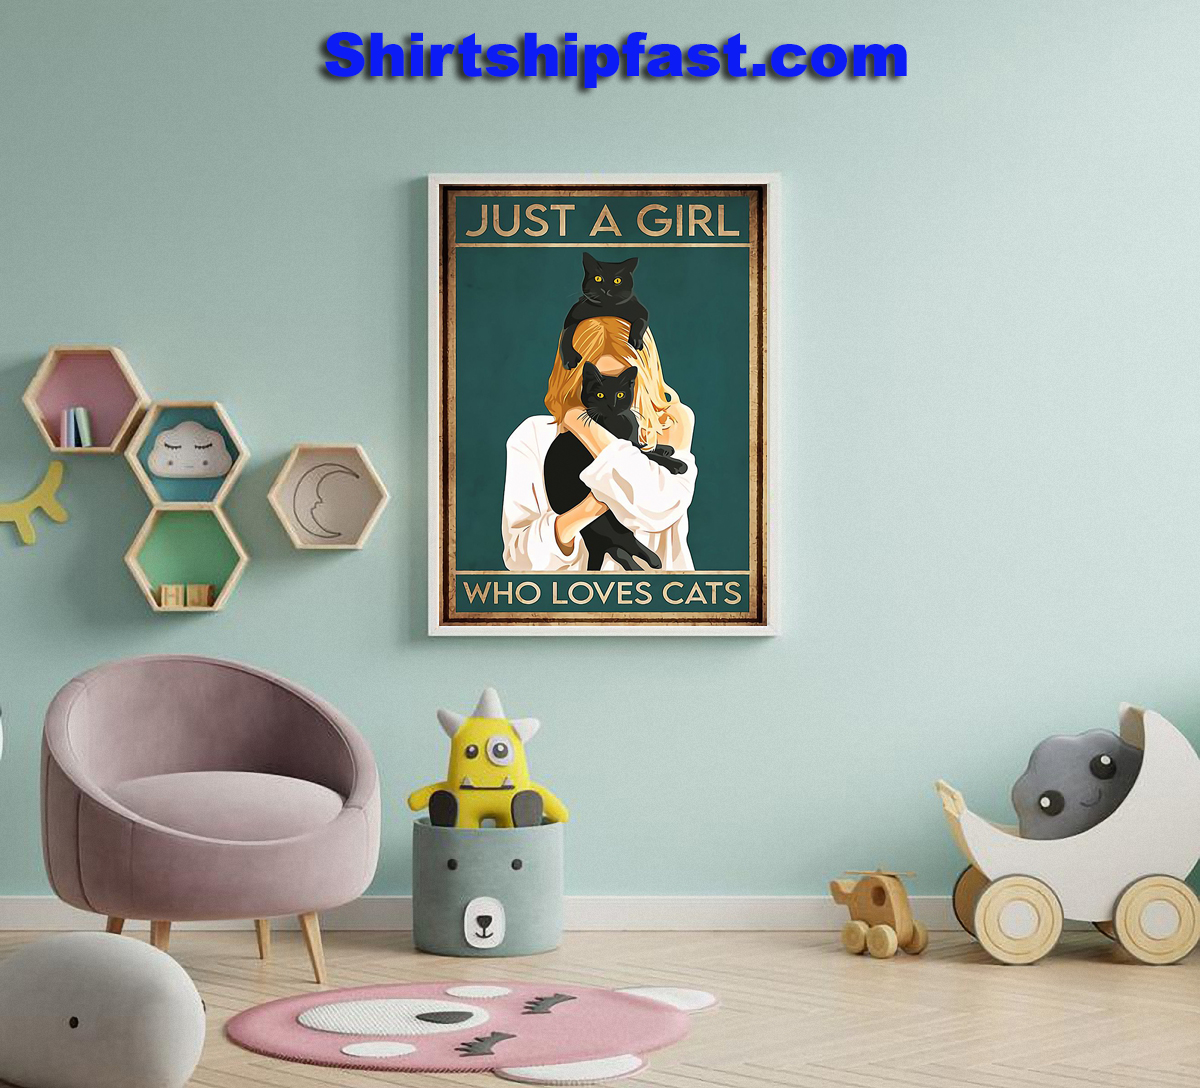 Just a girl who loves cats poster - Picture 1